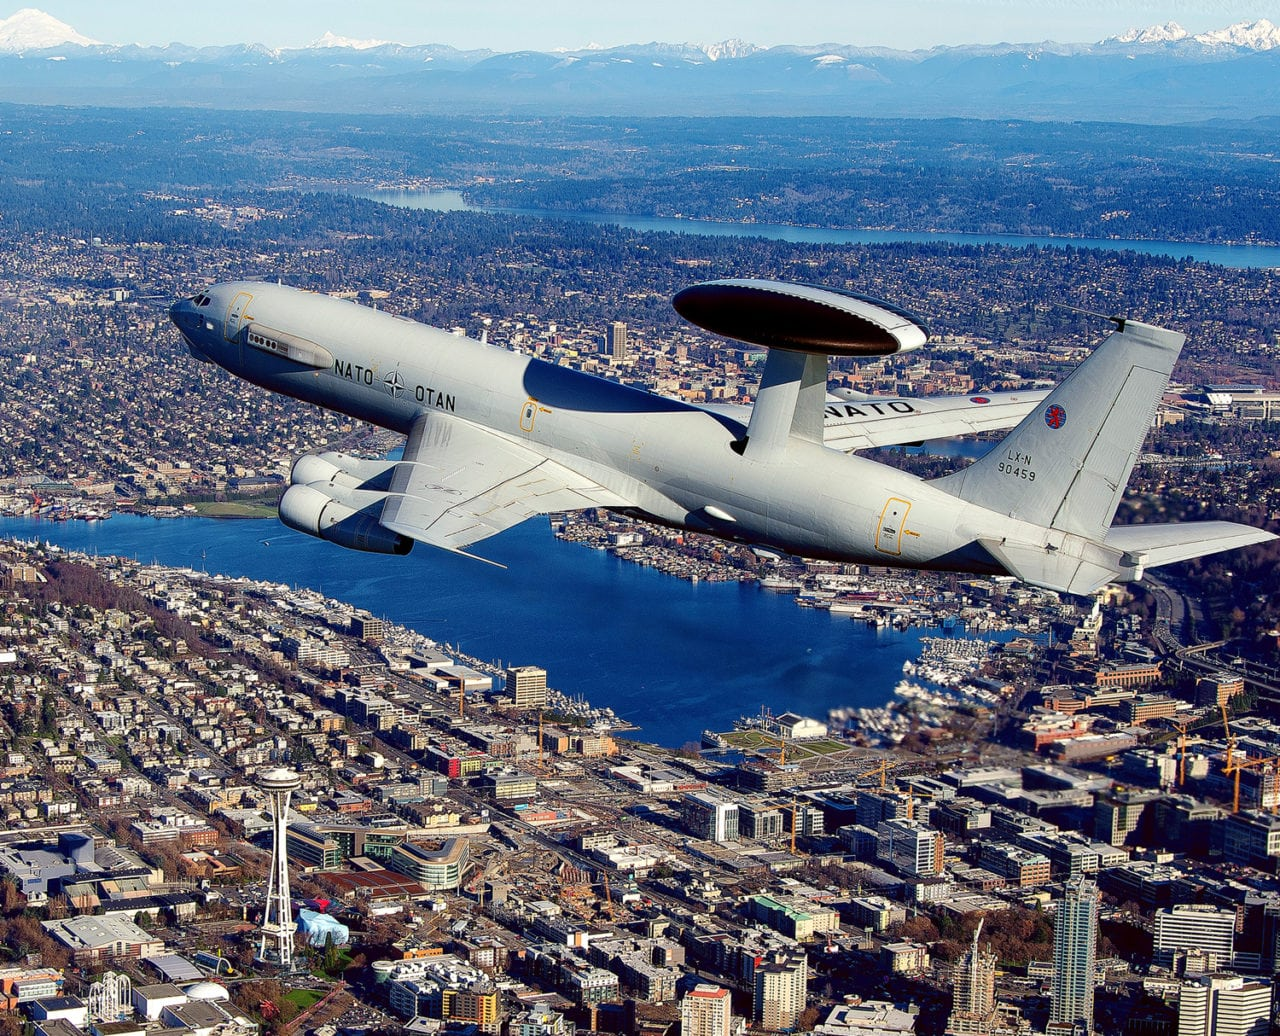 NATO's Airborne Warning and Control System (AWACS) aircraft